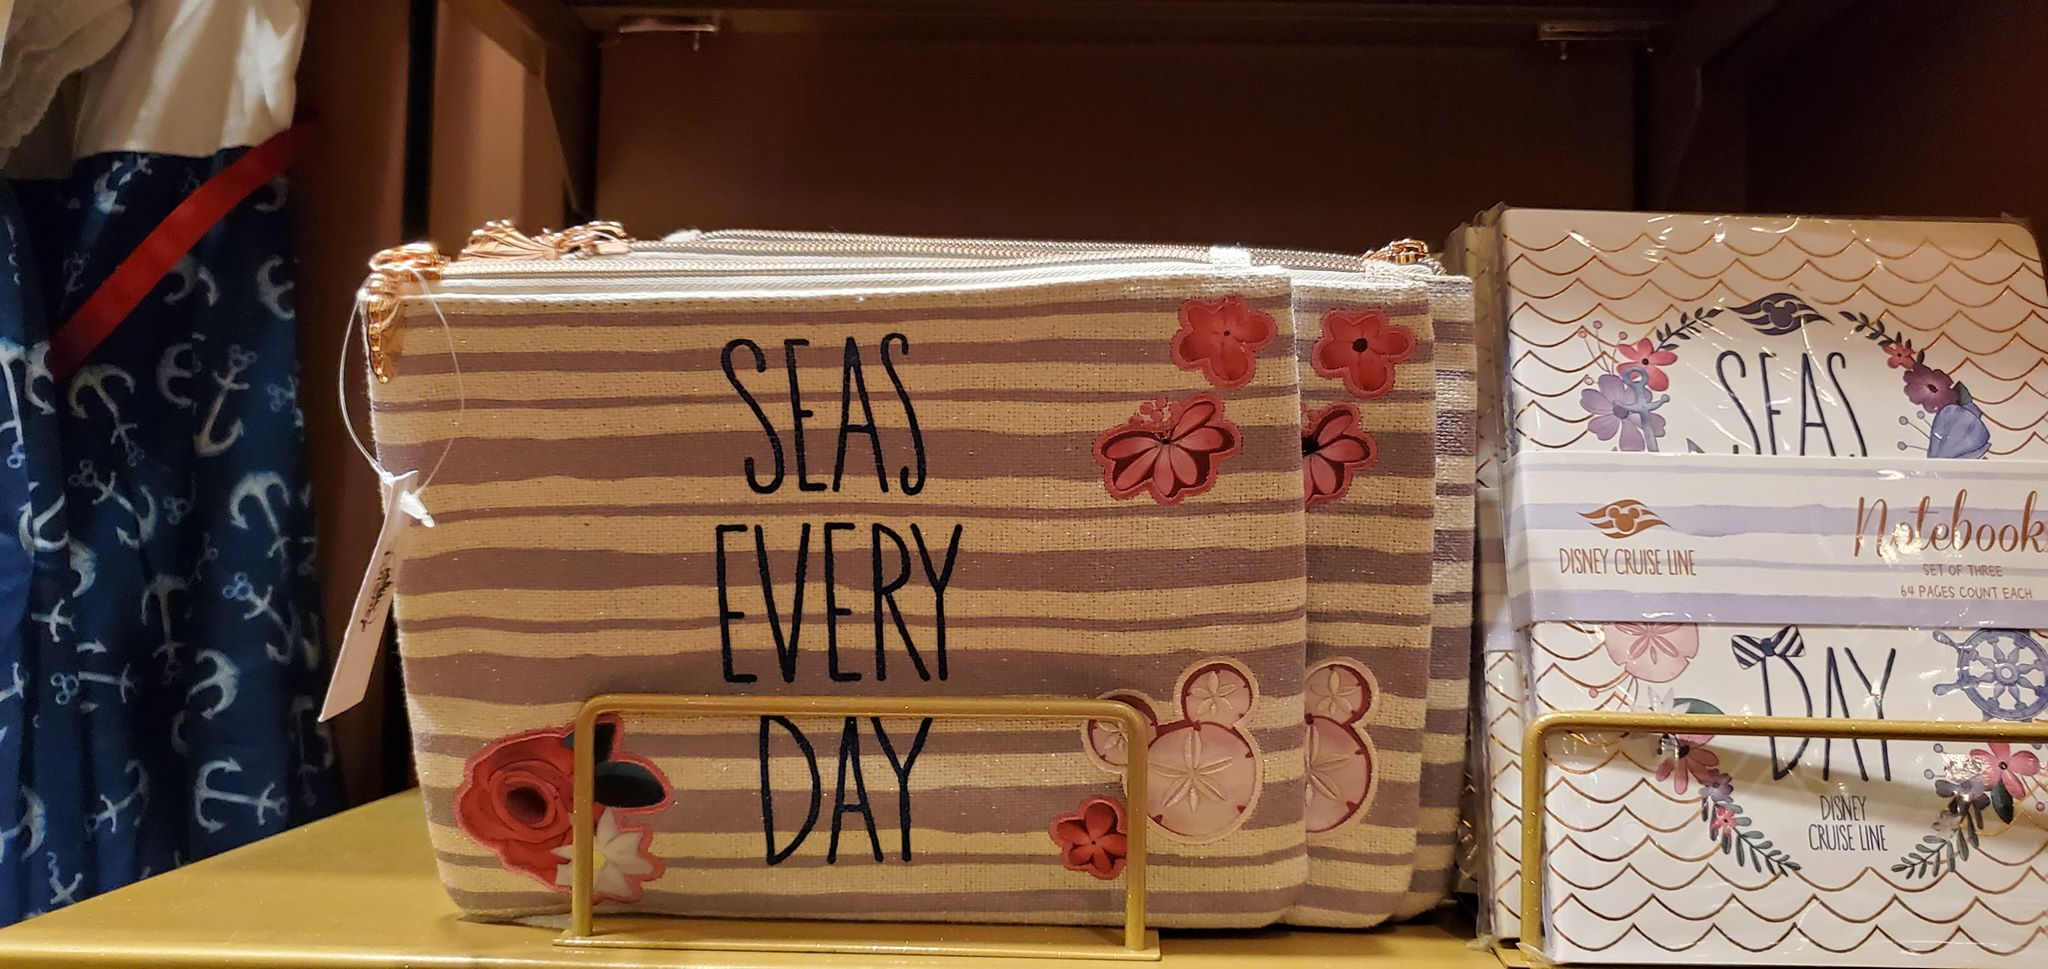 Seas Every Day With The New Floral DCL Merchandise Collection 11